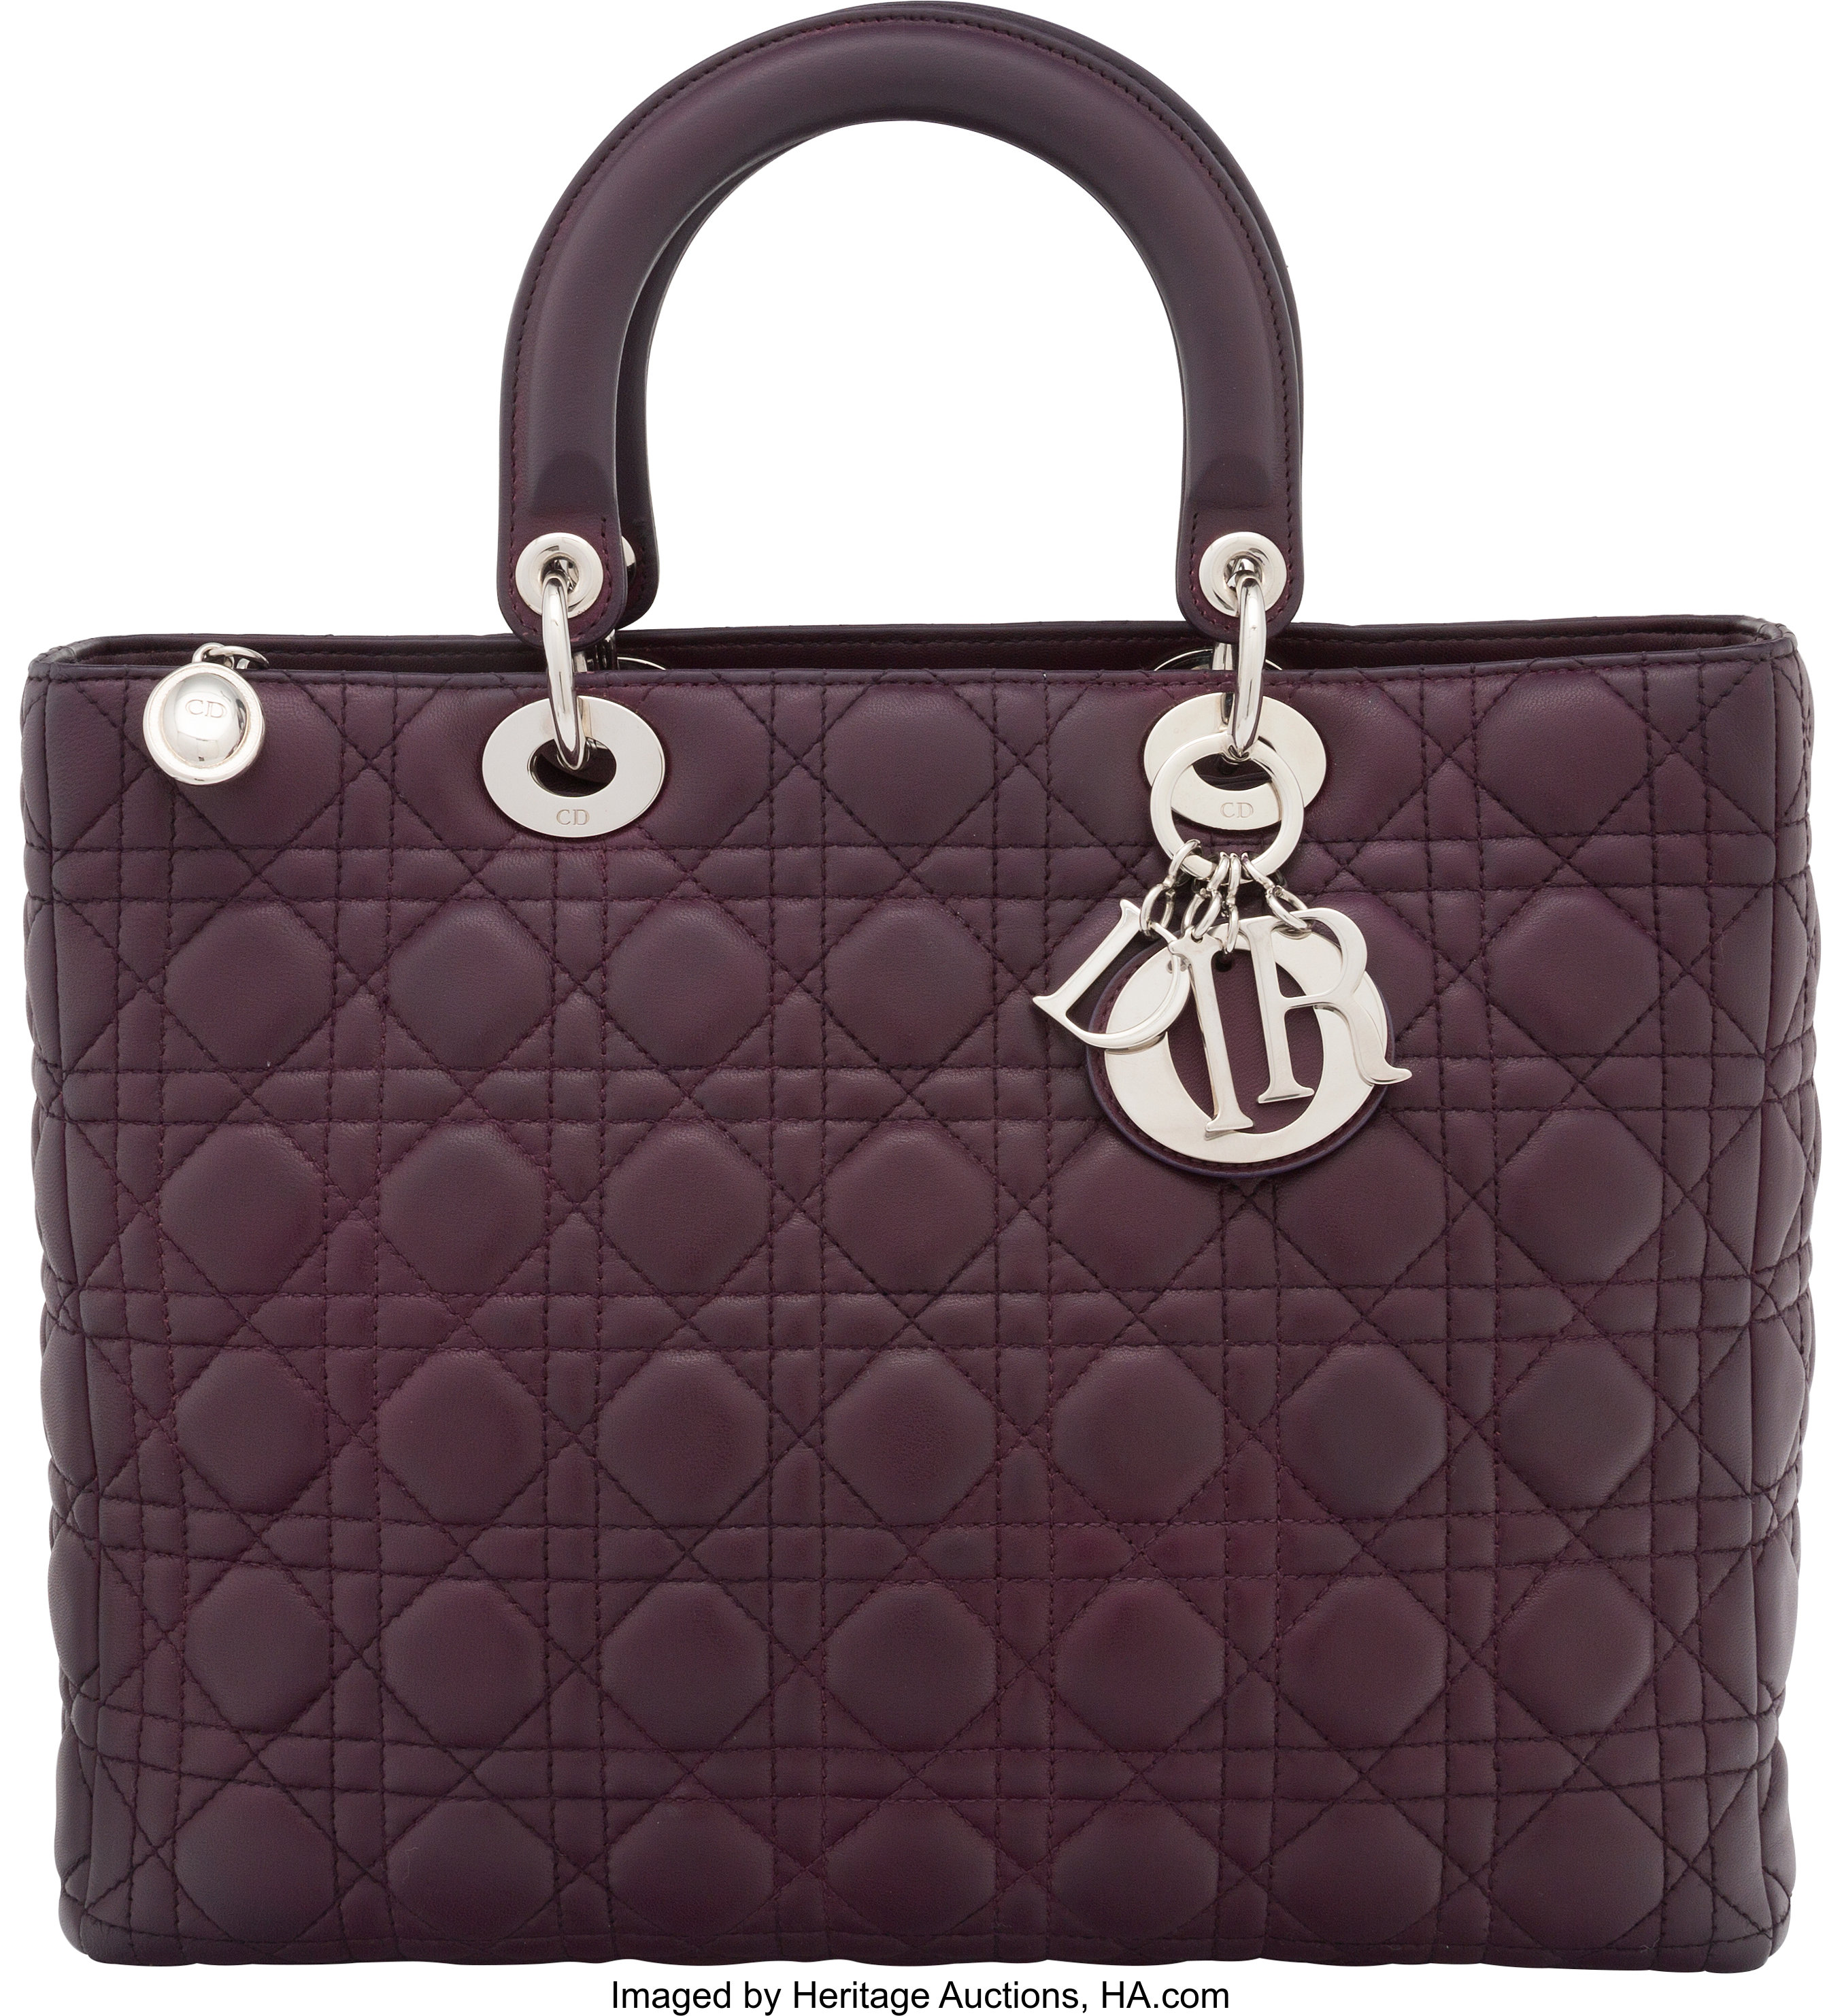 ff76a36550 Christian Dior Purple Cannage Quilted Lambskin Leather Large Lady | Lot  #58321 | Heritage Auctions